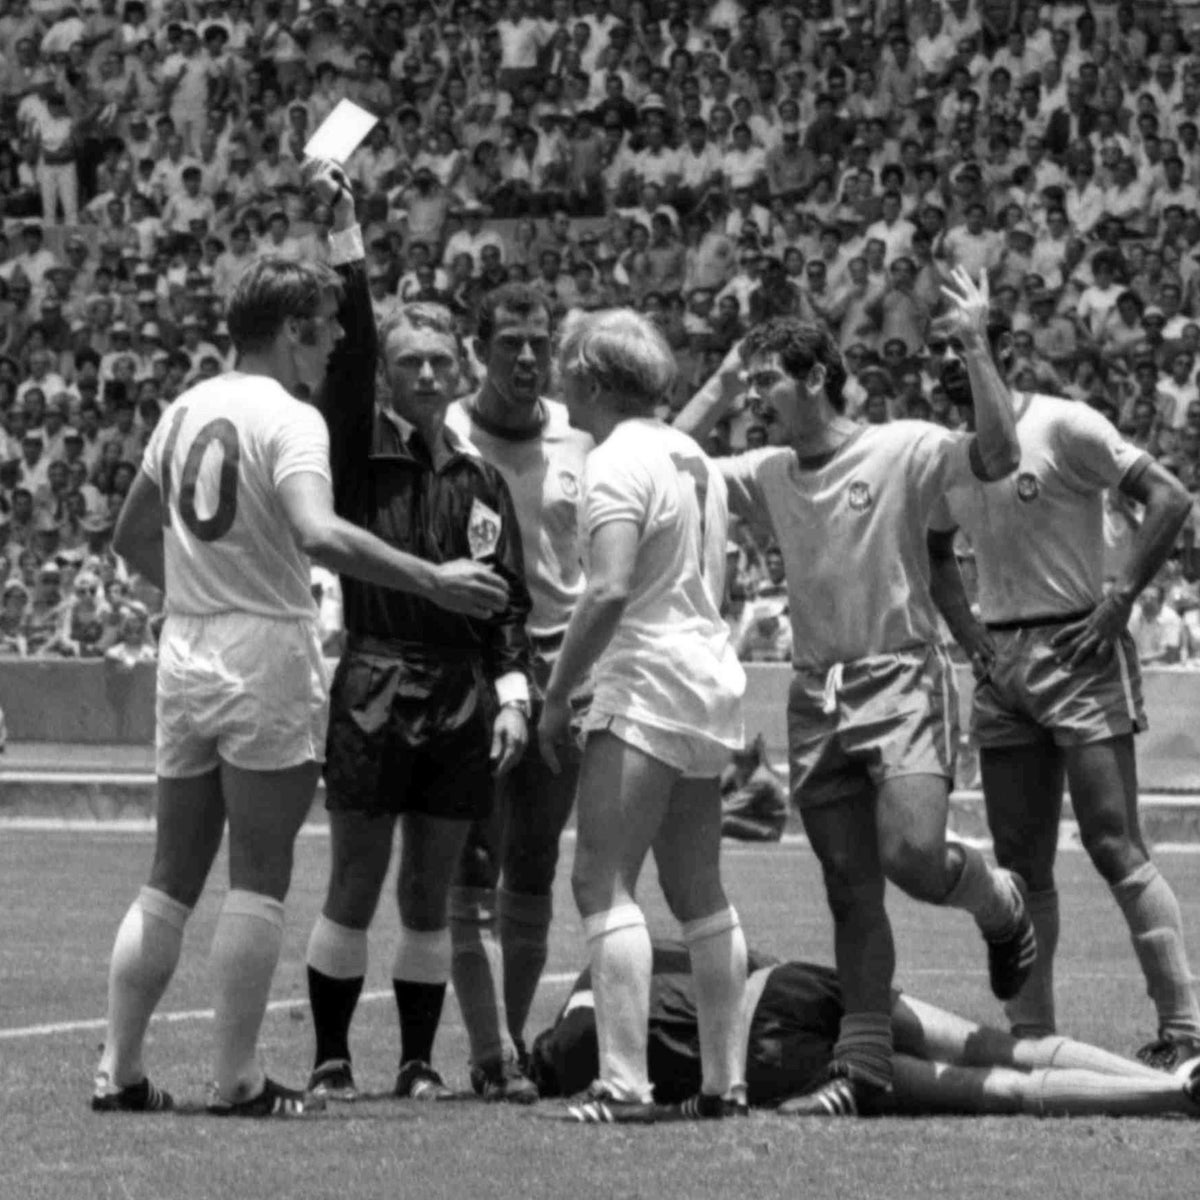 Abraham Klein showing the yellow card in the World Cup match England vs. Brazil, Guadalajara, Mexico, June 7, 1970.